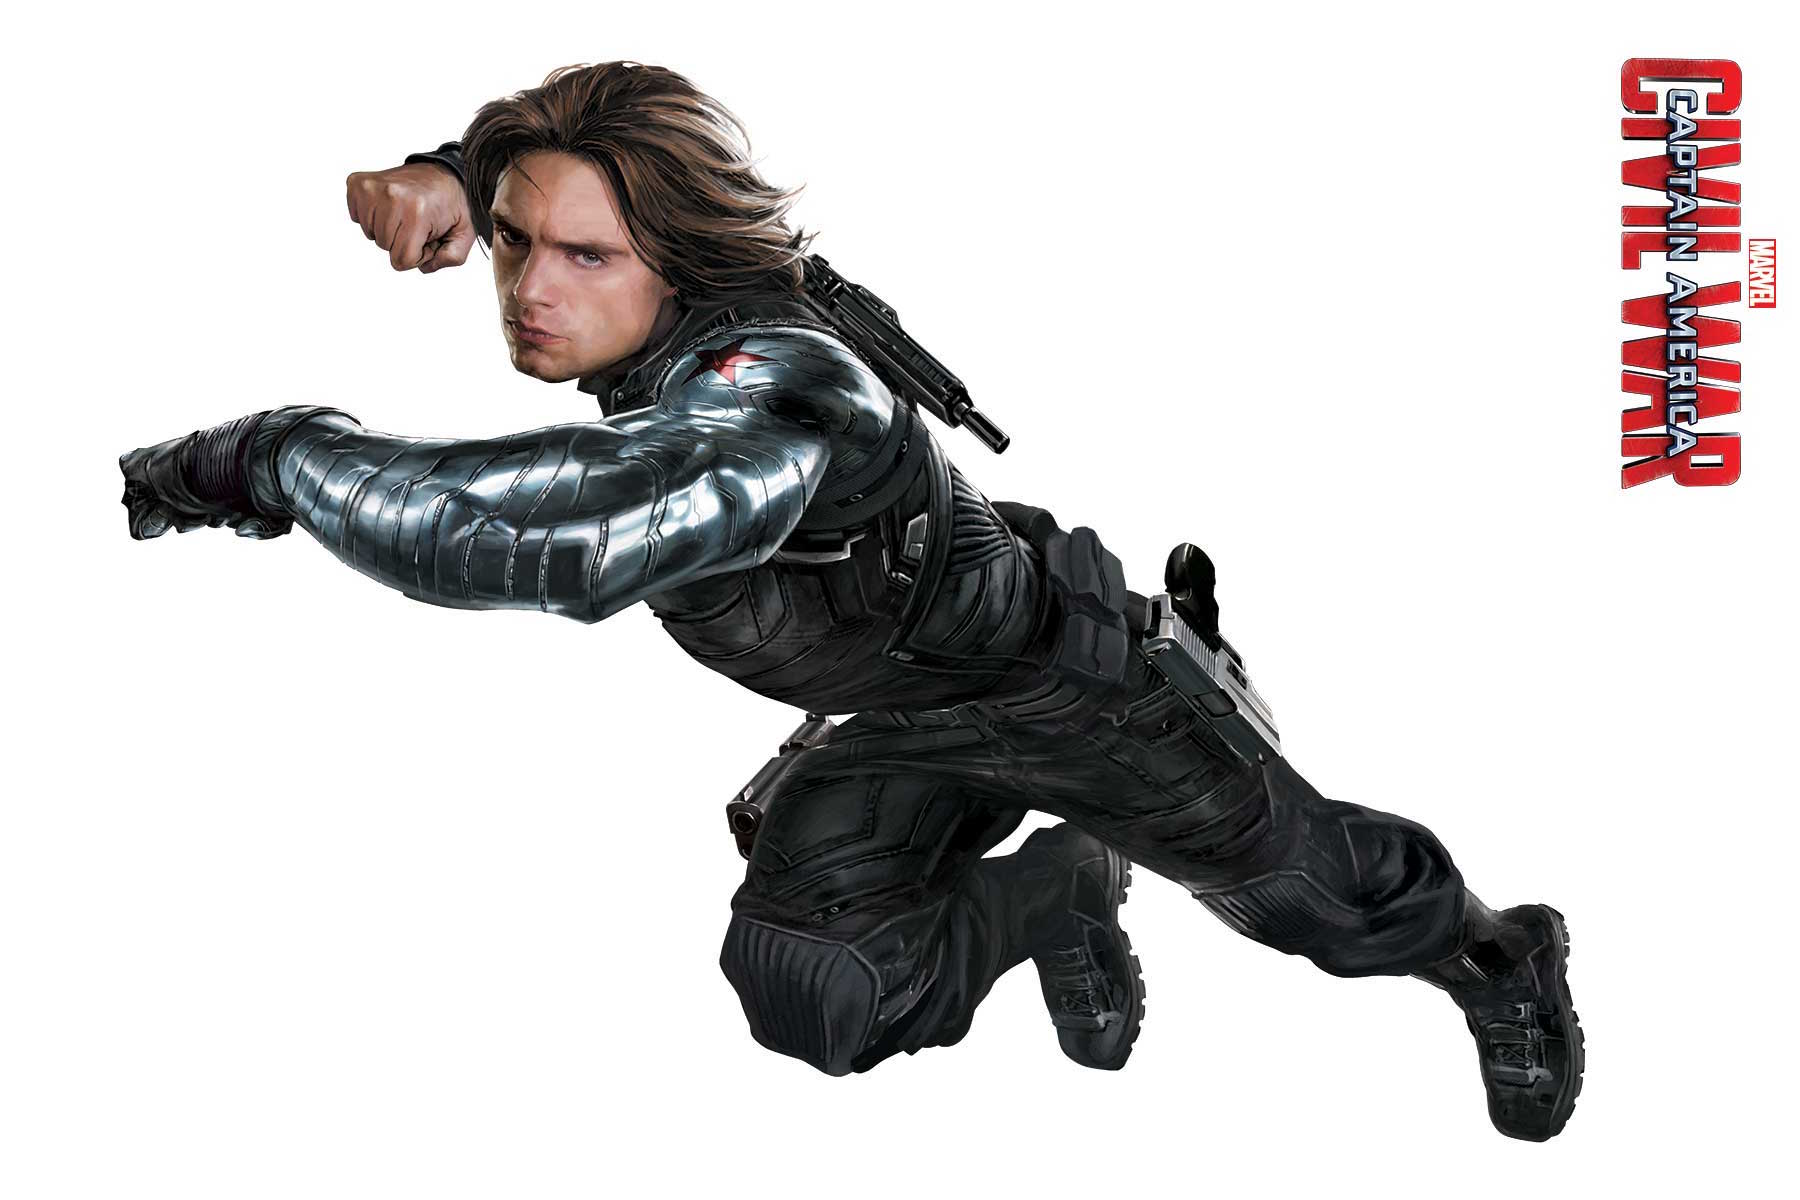 captain-america-civil-war-artwork-winter-soldier